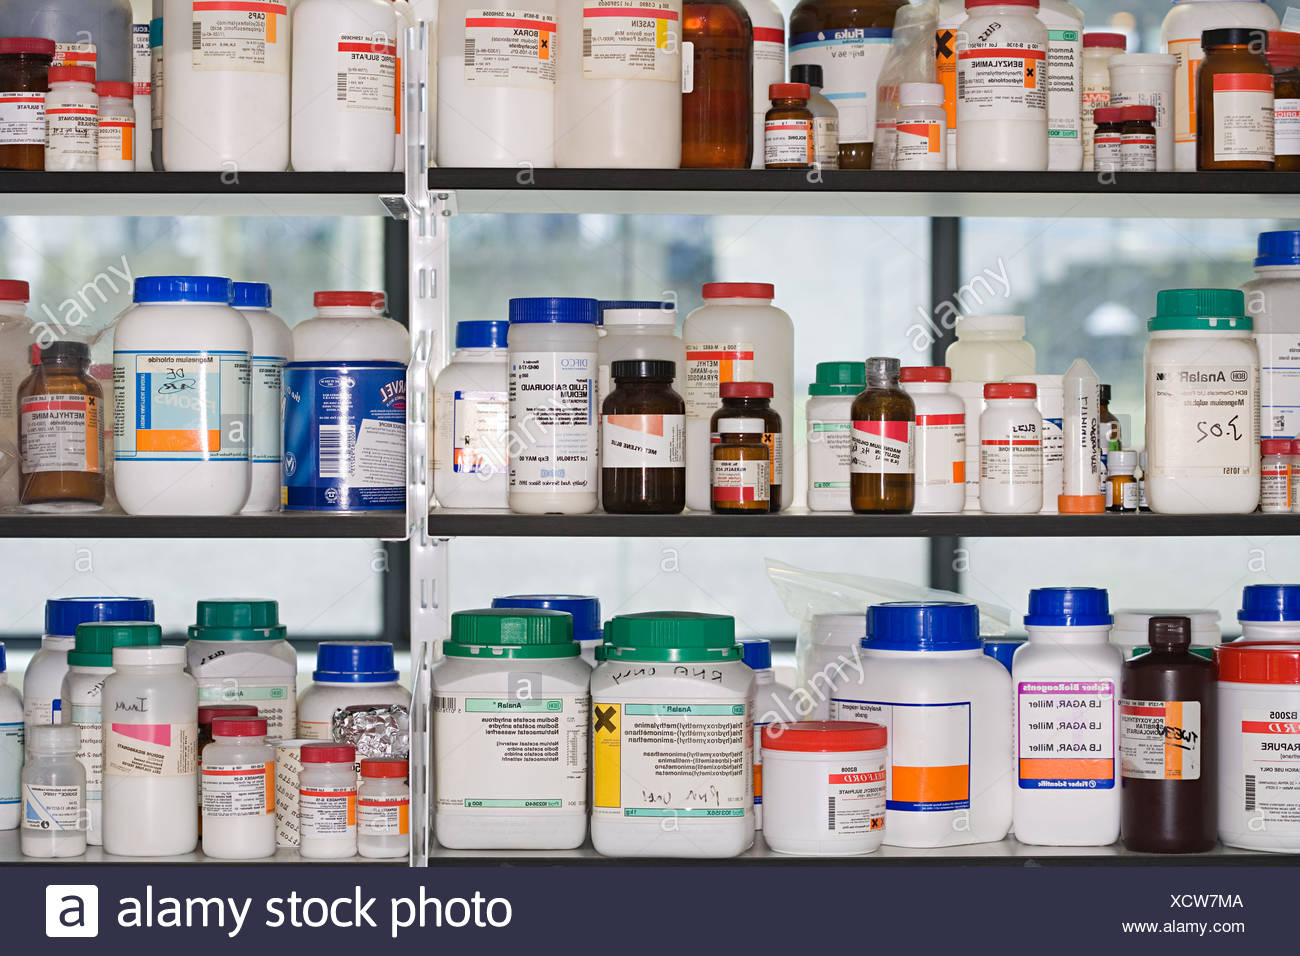 Chemicals on a shelf - Stock Image